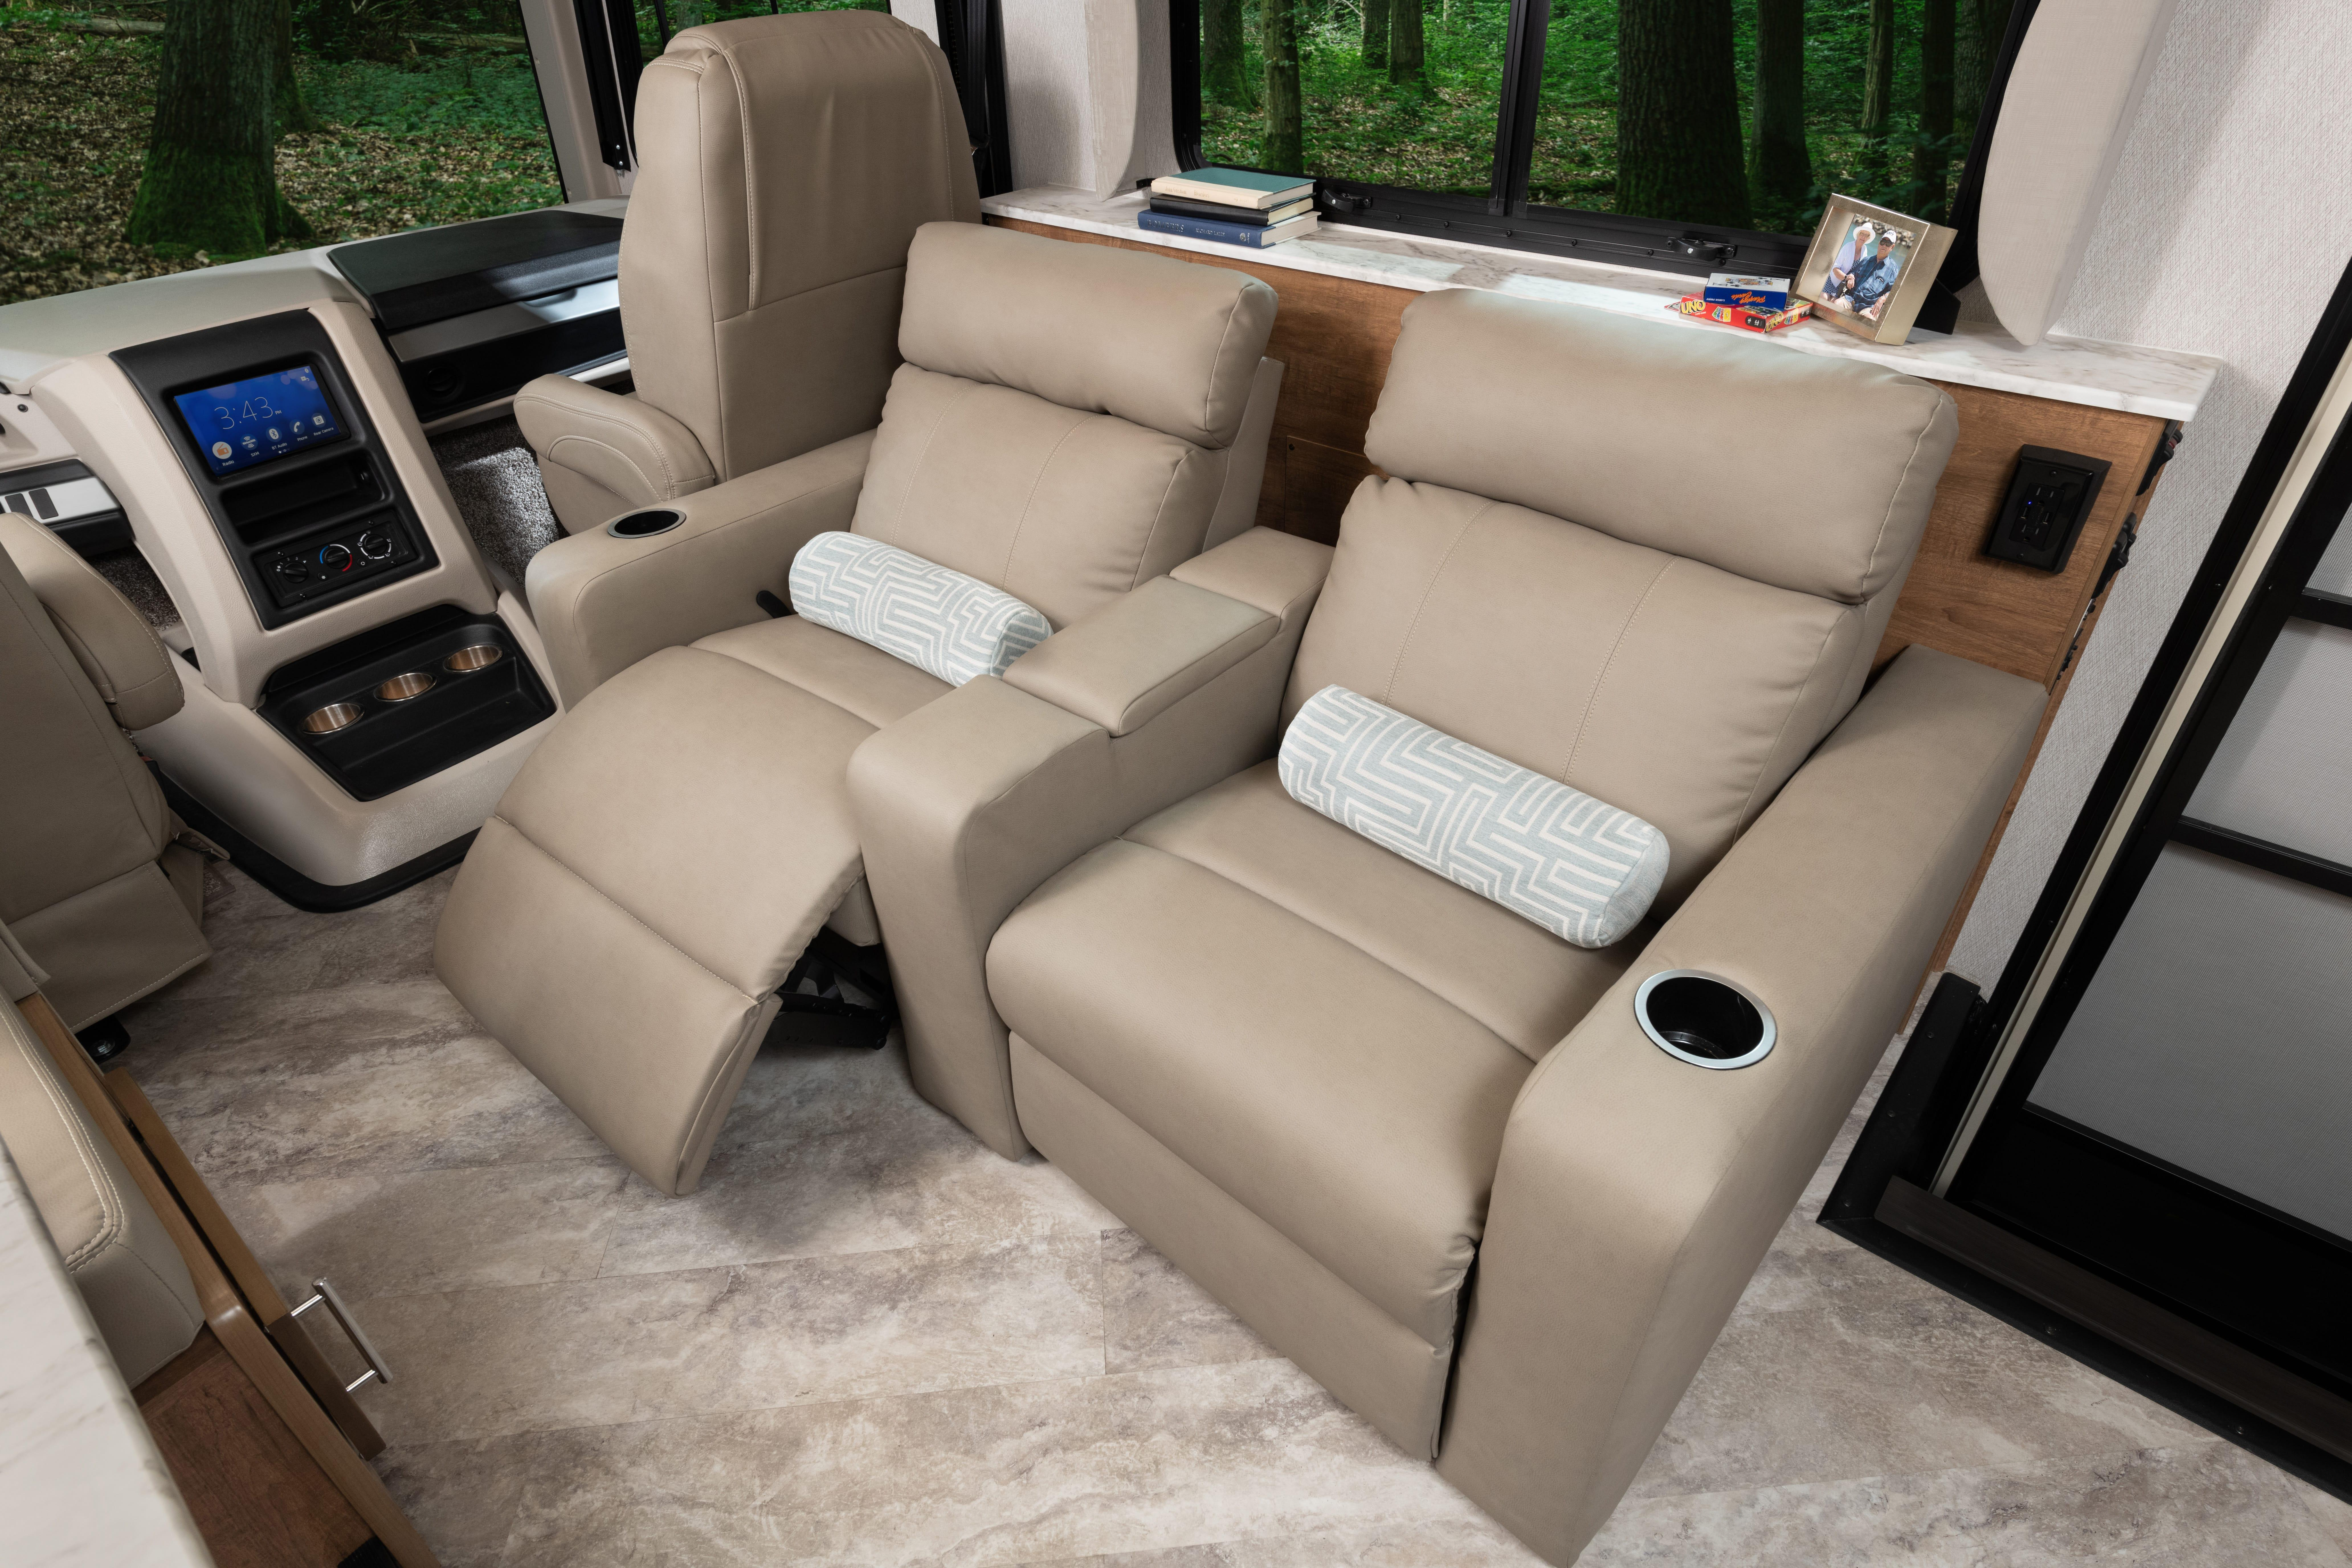 8 theatreseat INTERIOR Fortis 33 HB Outerbanks Eng Chest MY22 7574open